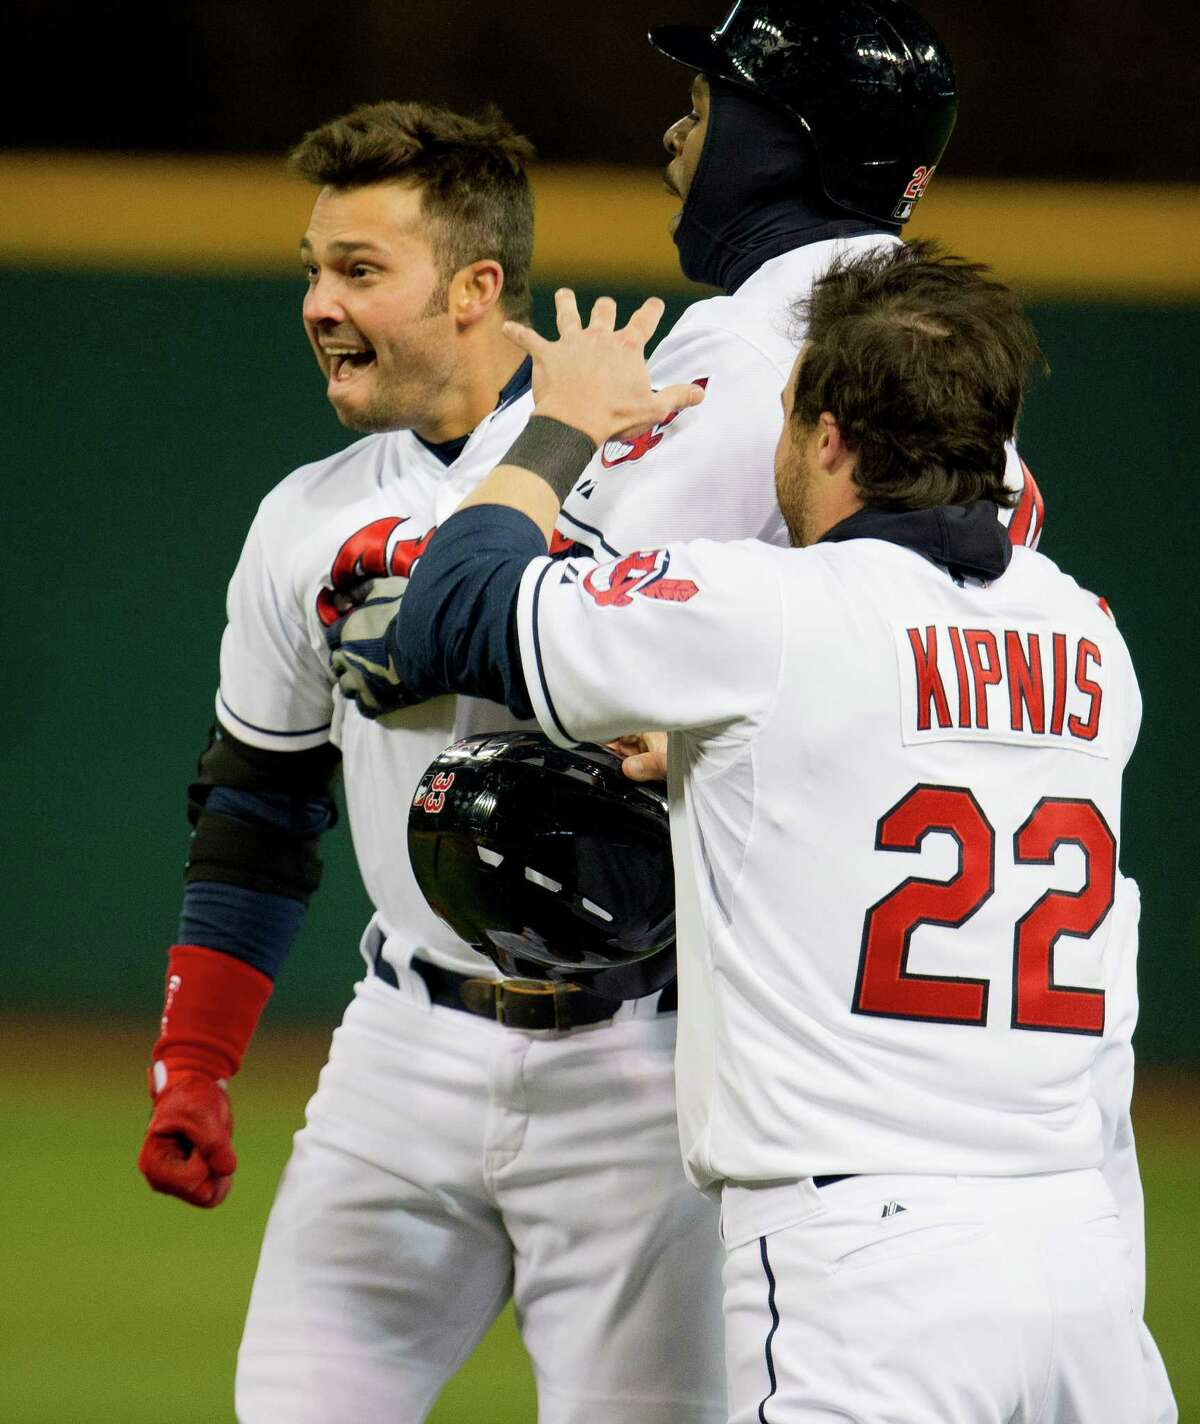 Thanks to Nick Swisher, left, Michael Bourn, Jason Kipnis and the Indians got their first home win.